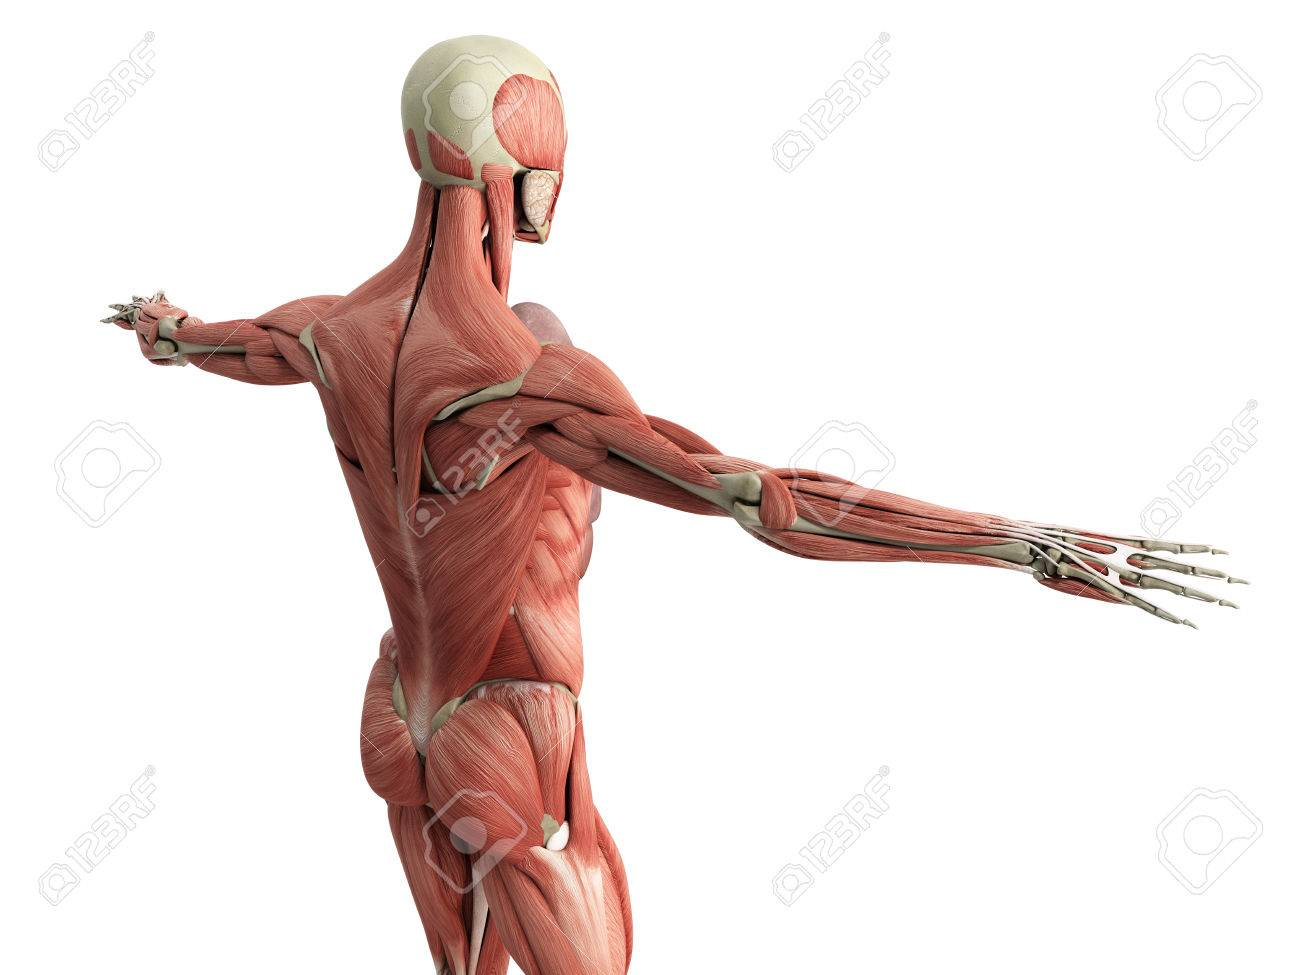 Human Muscle Anatomy 3d Render On White Stock Photo Picture And